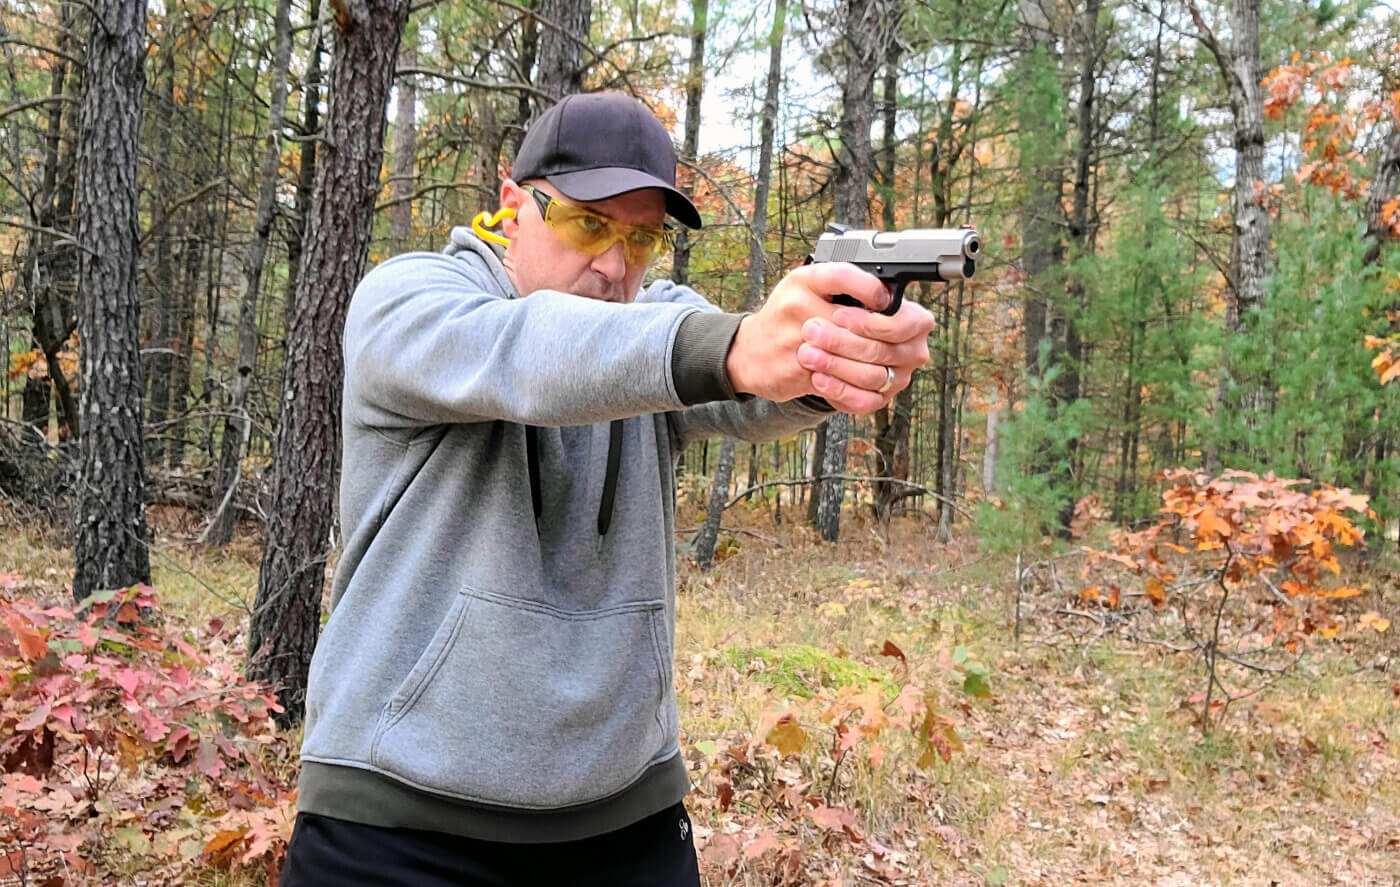 Shooting the EMP Champion Concealed Carry Contour